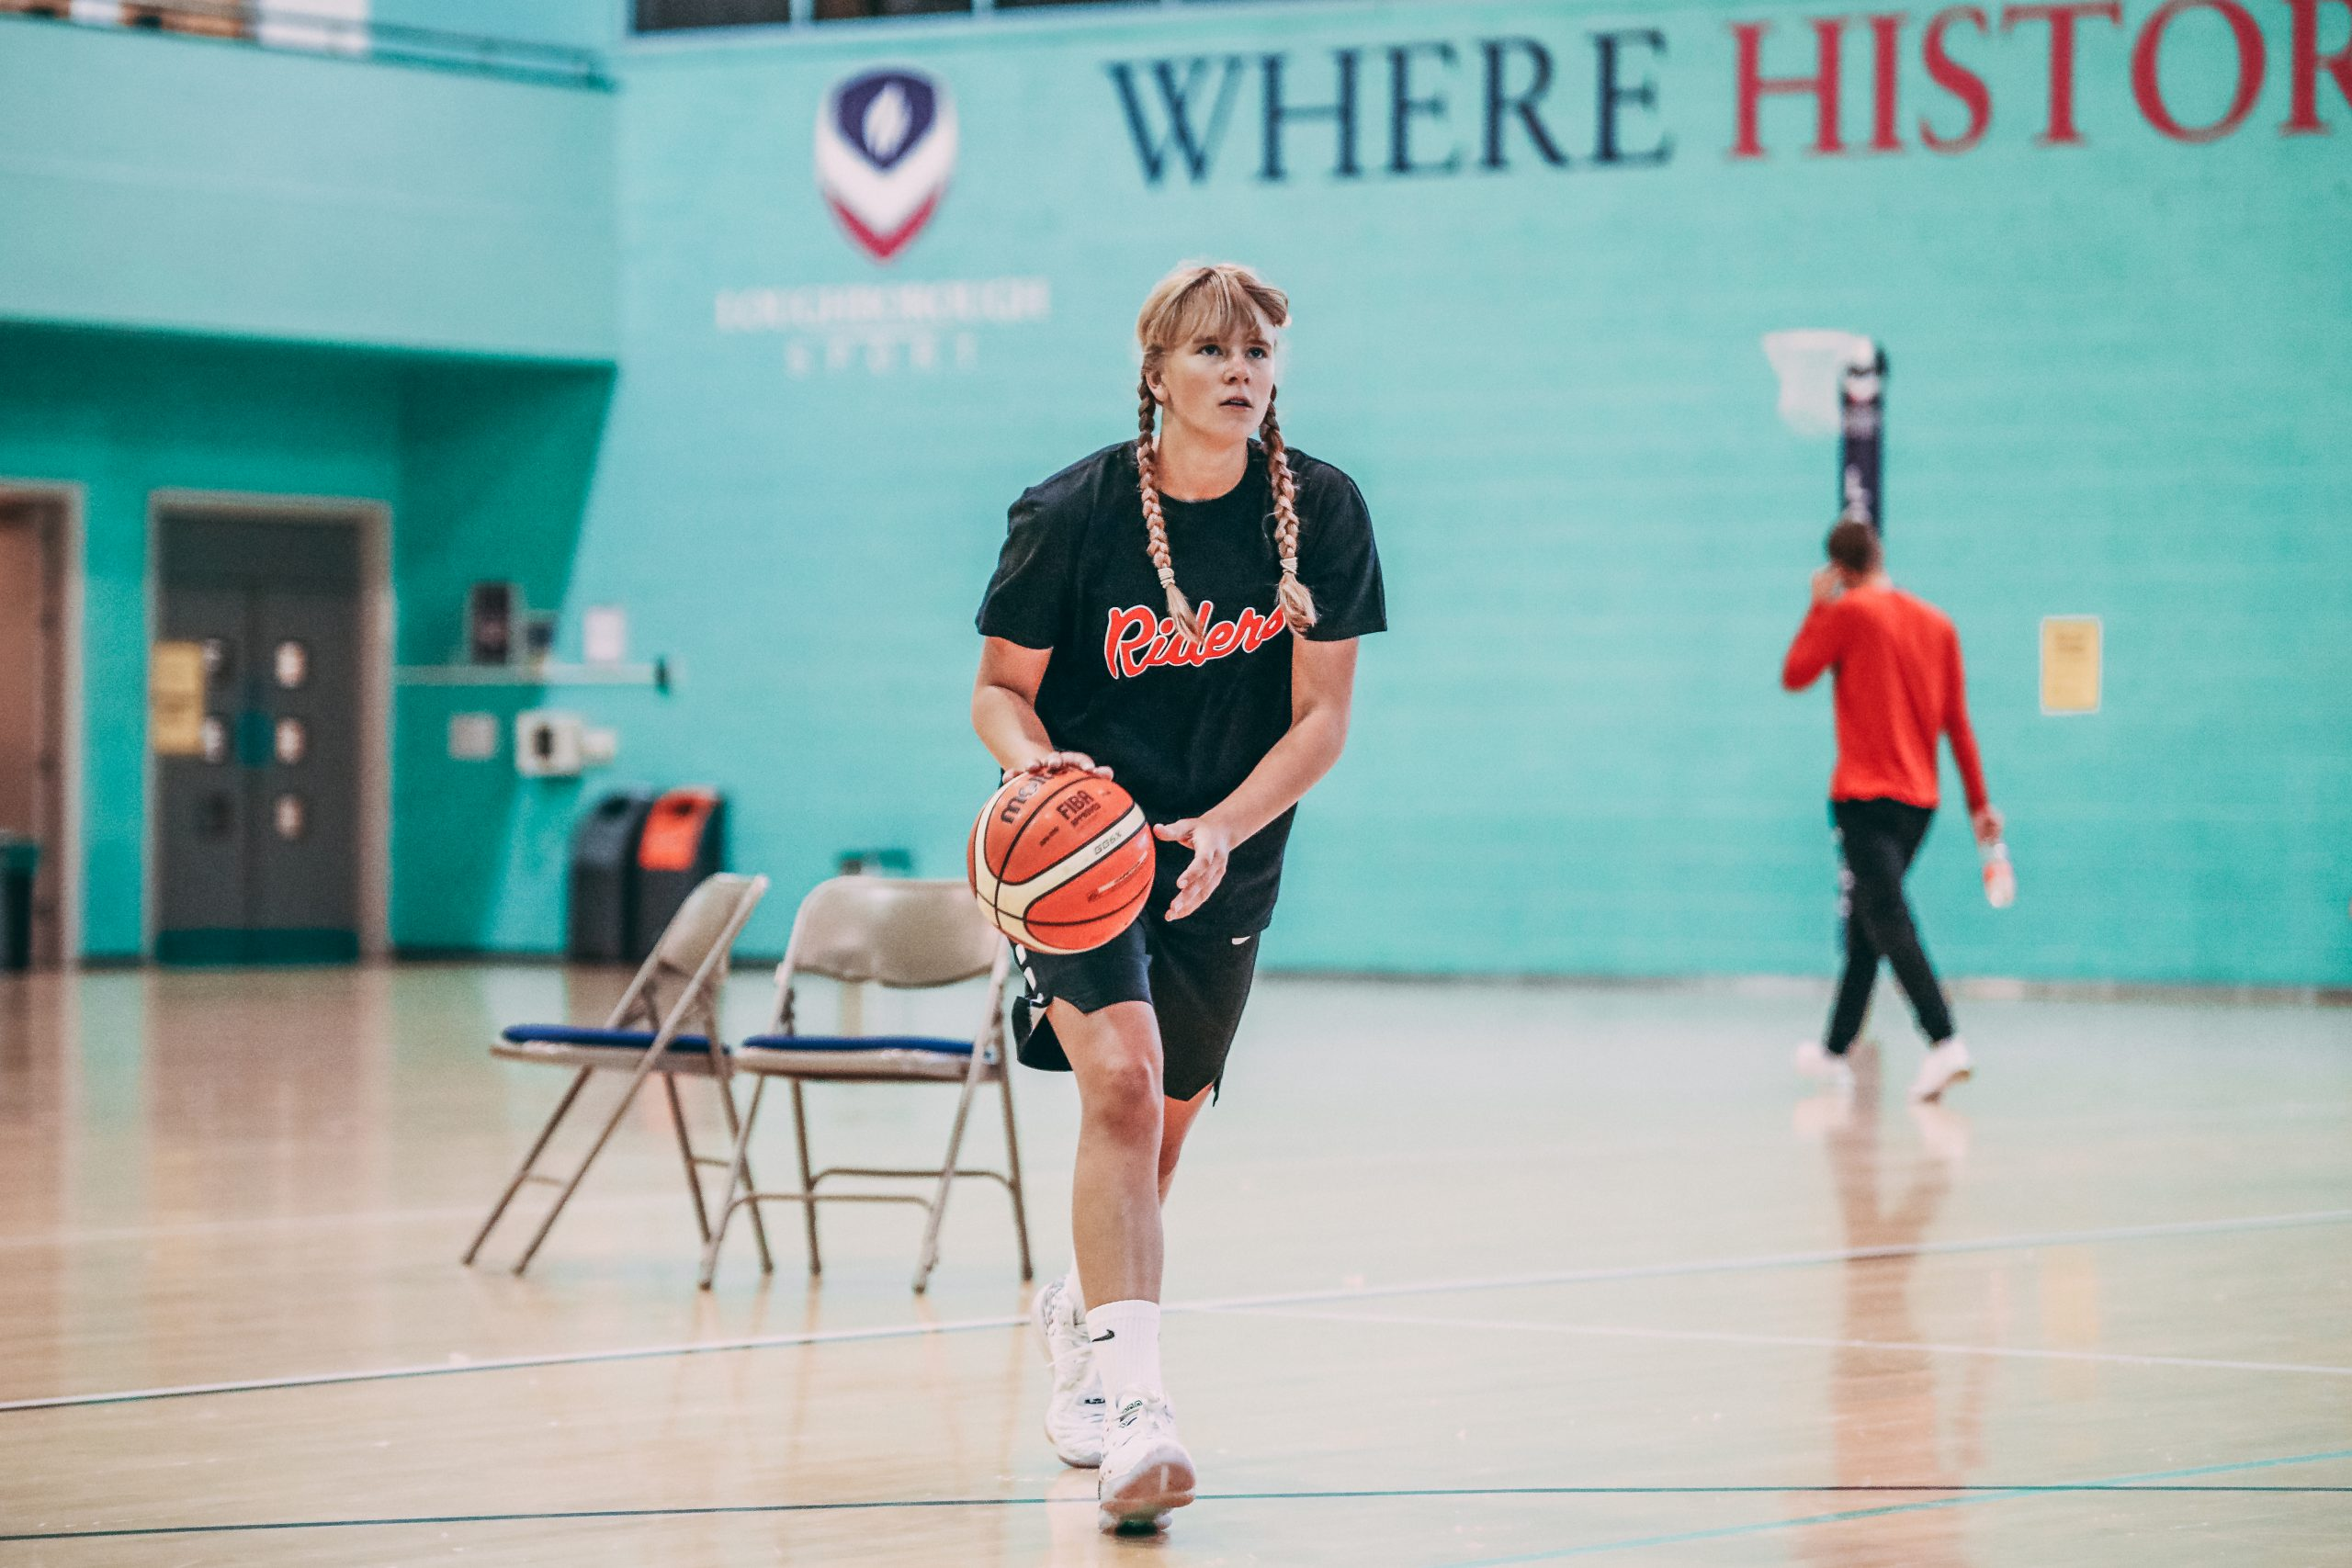 Katie Januszewska joins the Leicester Riders